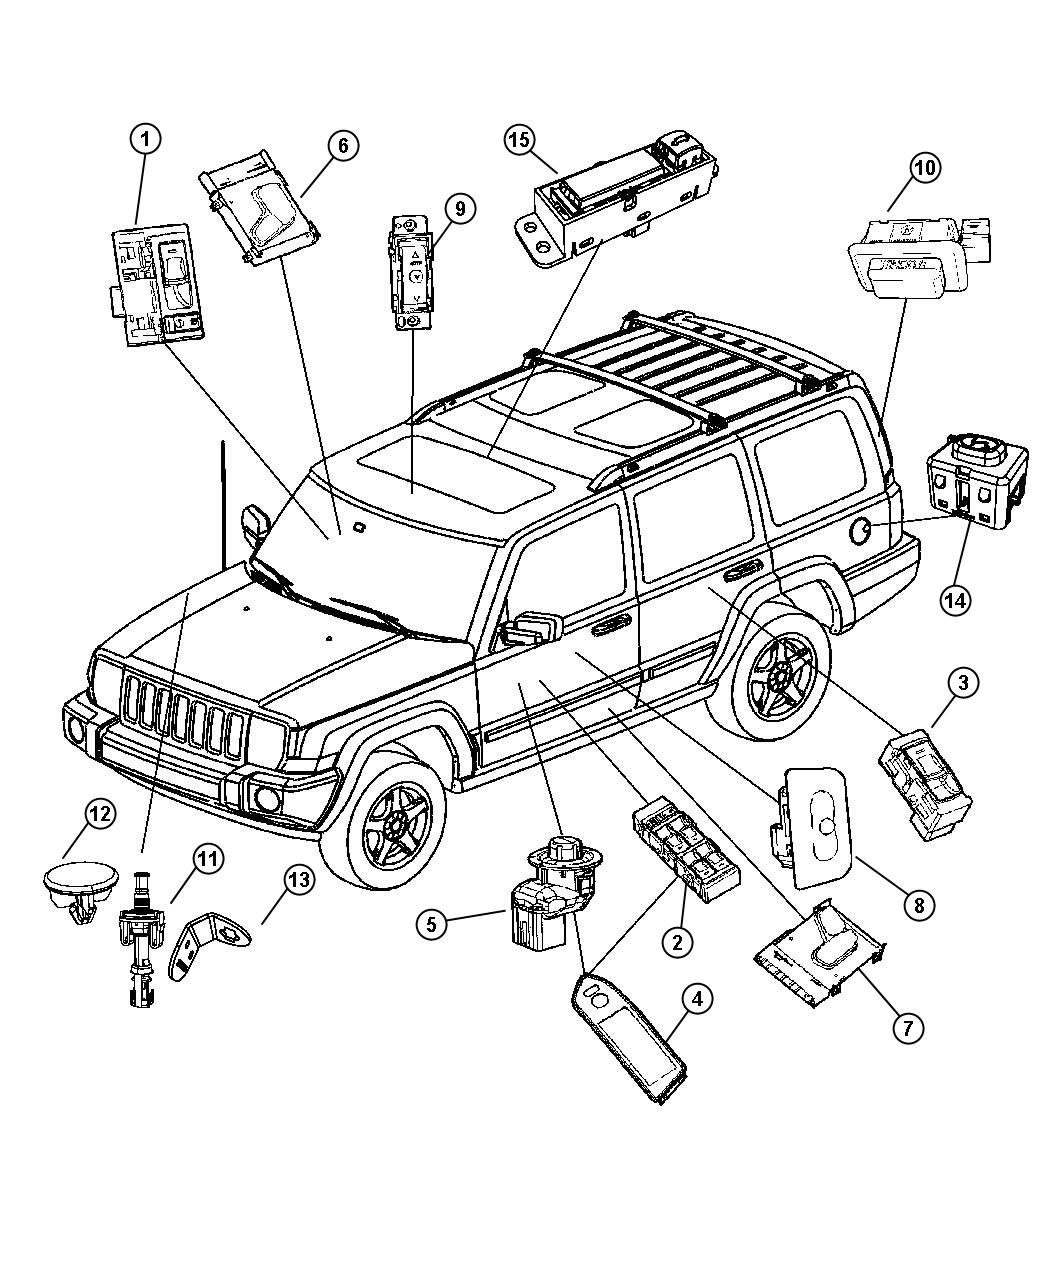 Chevy Keyless Entry Remote Replacement | Wiring Diagram Database